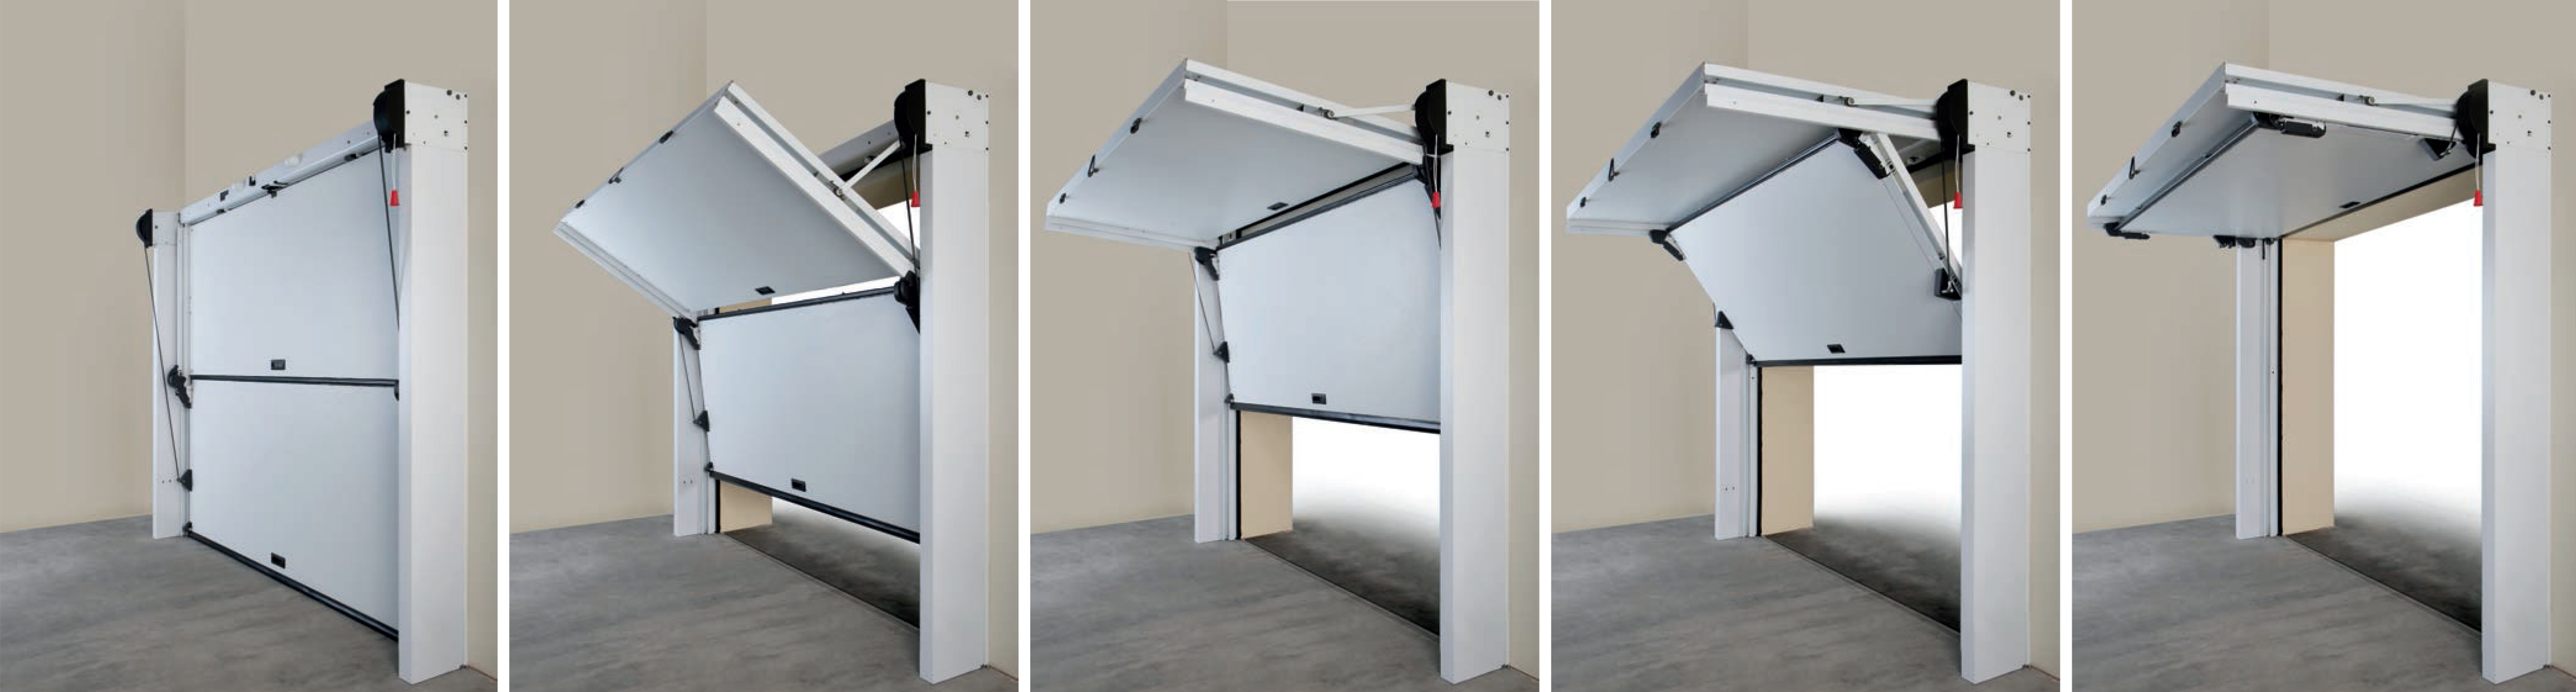 Open any garage door